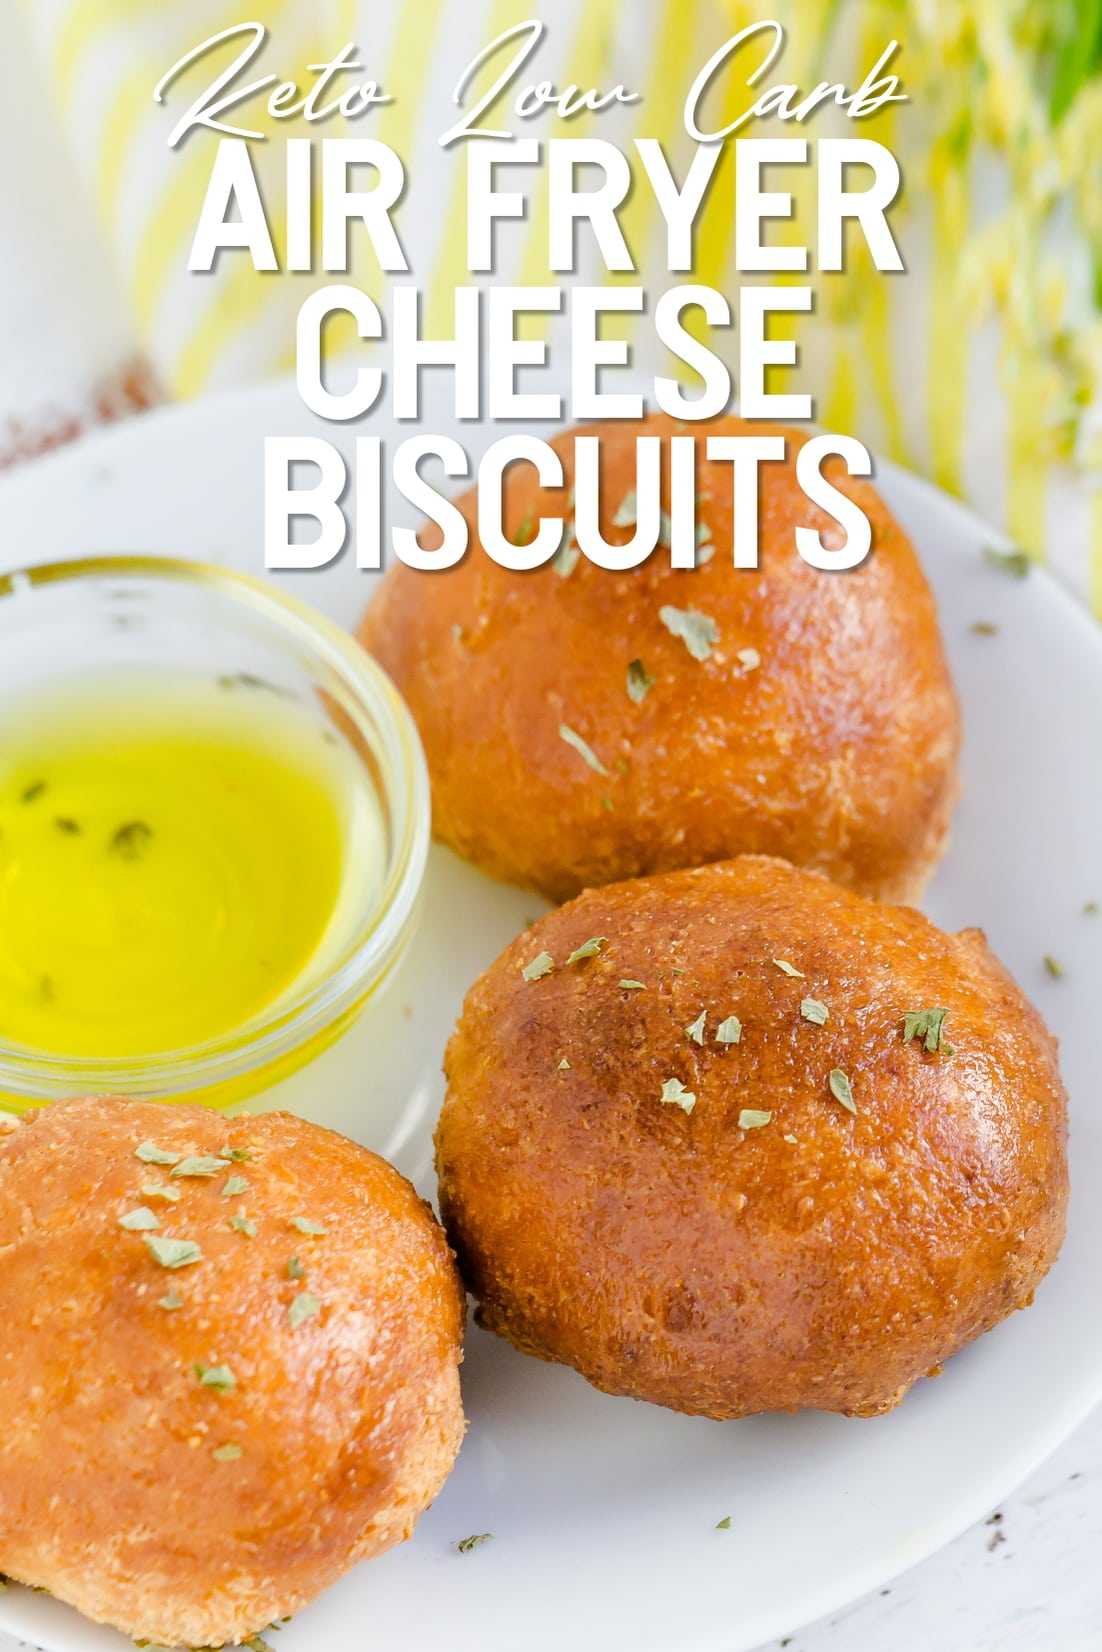 Keto Air Fryer Cheese Biscuits on white plate with olive oil